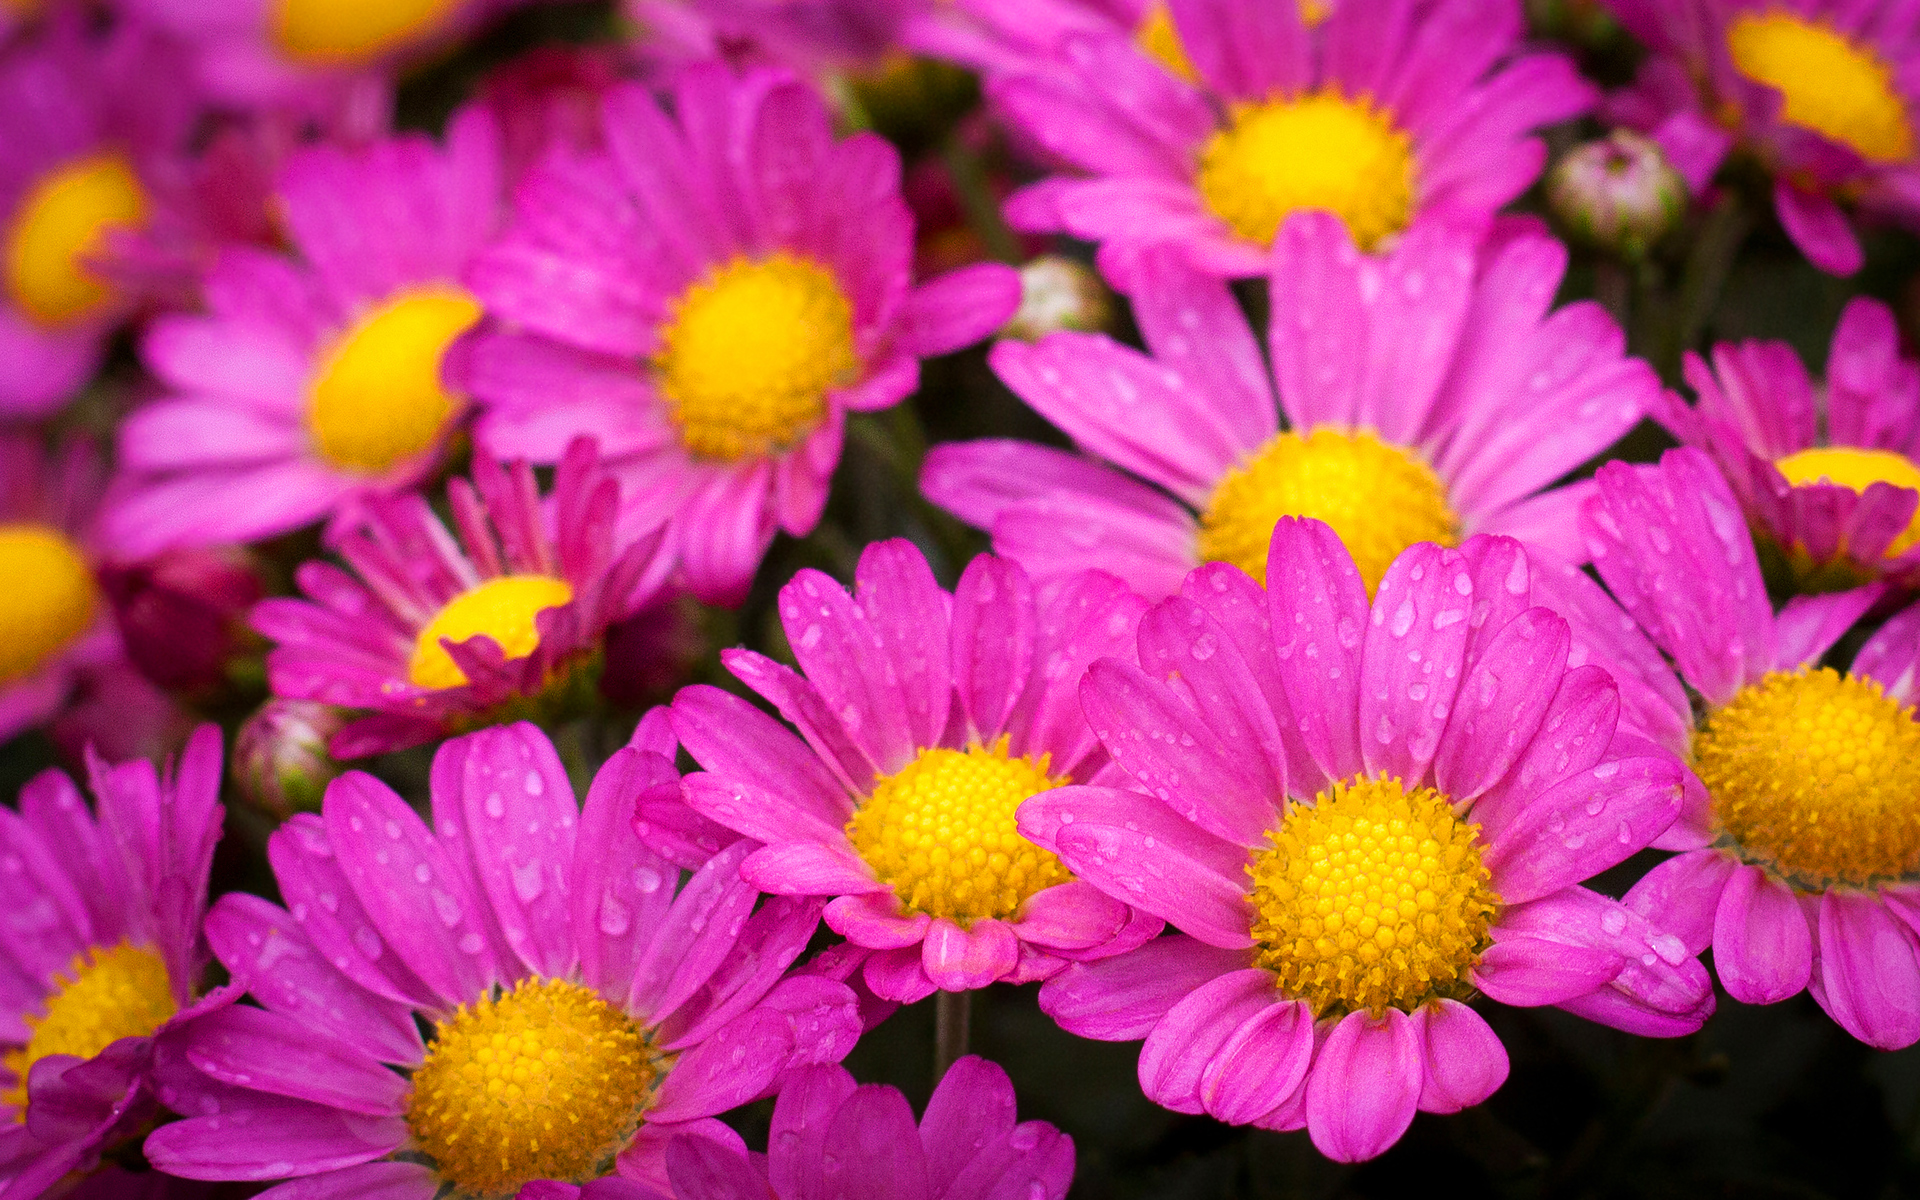 Pink Flower Images Hd - HD Desktop Wallpapers